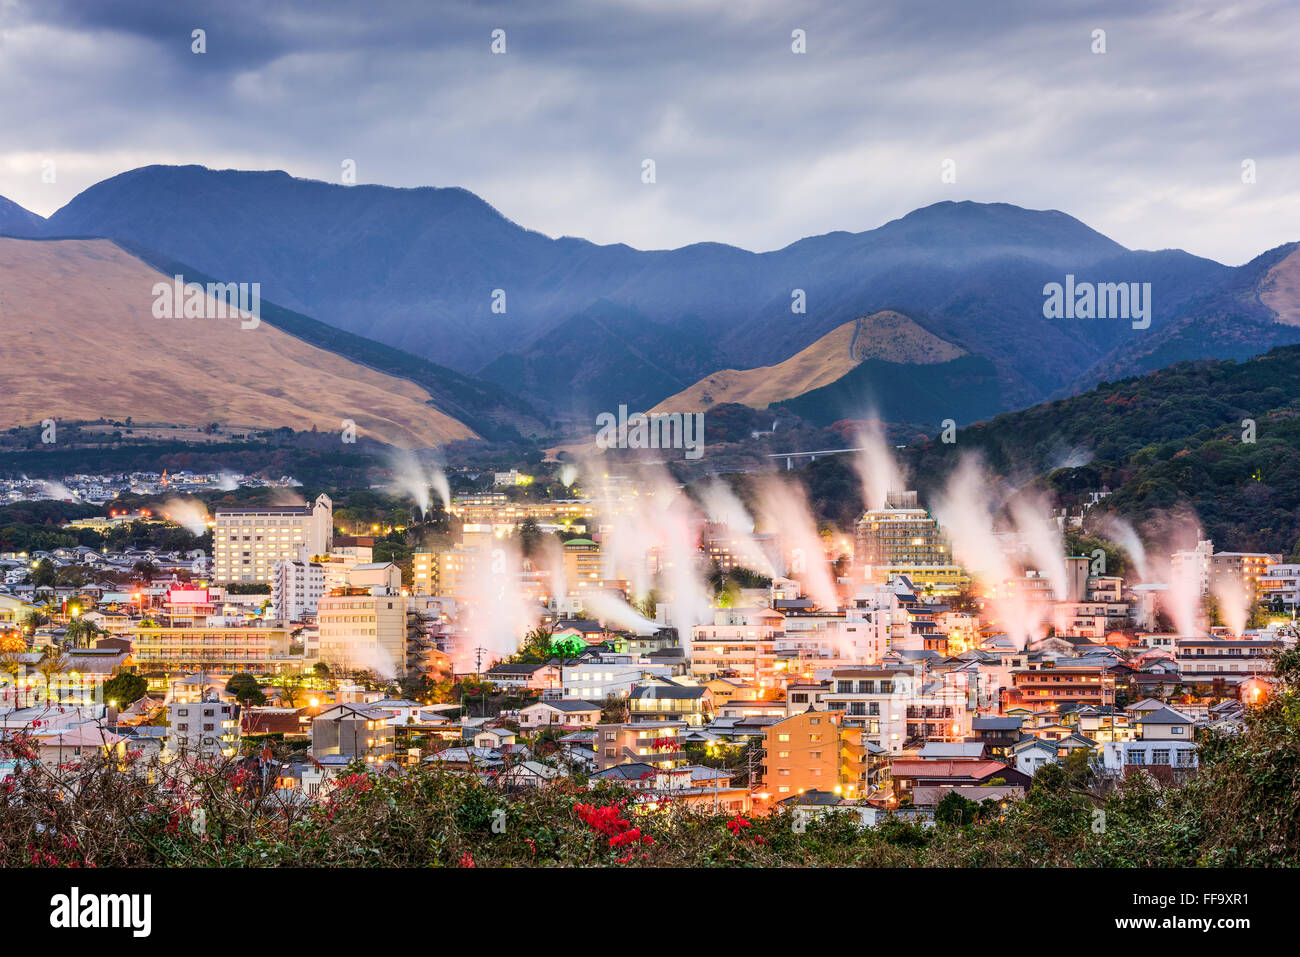 Beppu, Japan cityscape with hot spring bath houses with rising steam ...